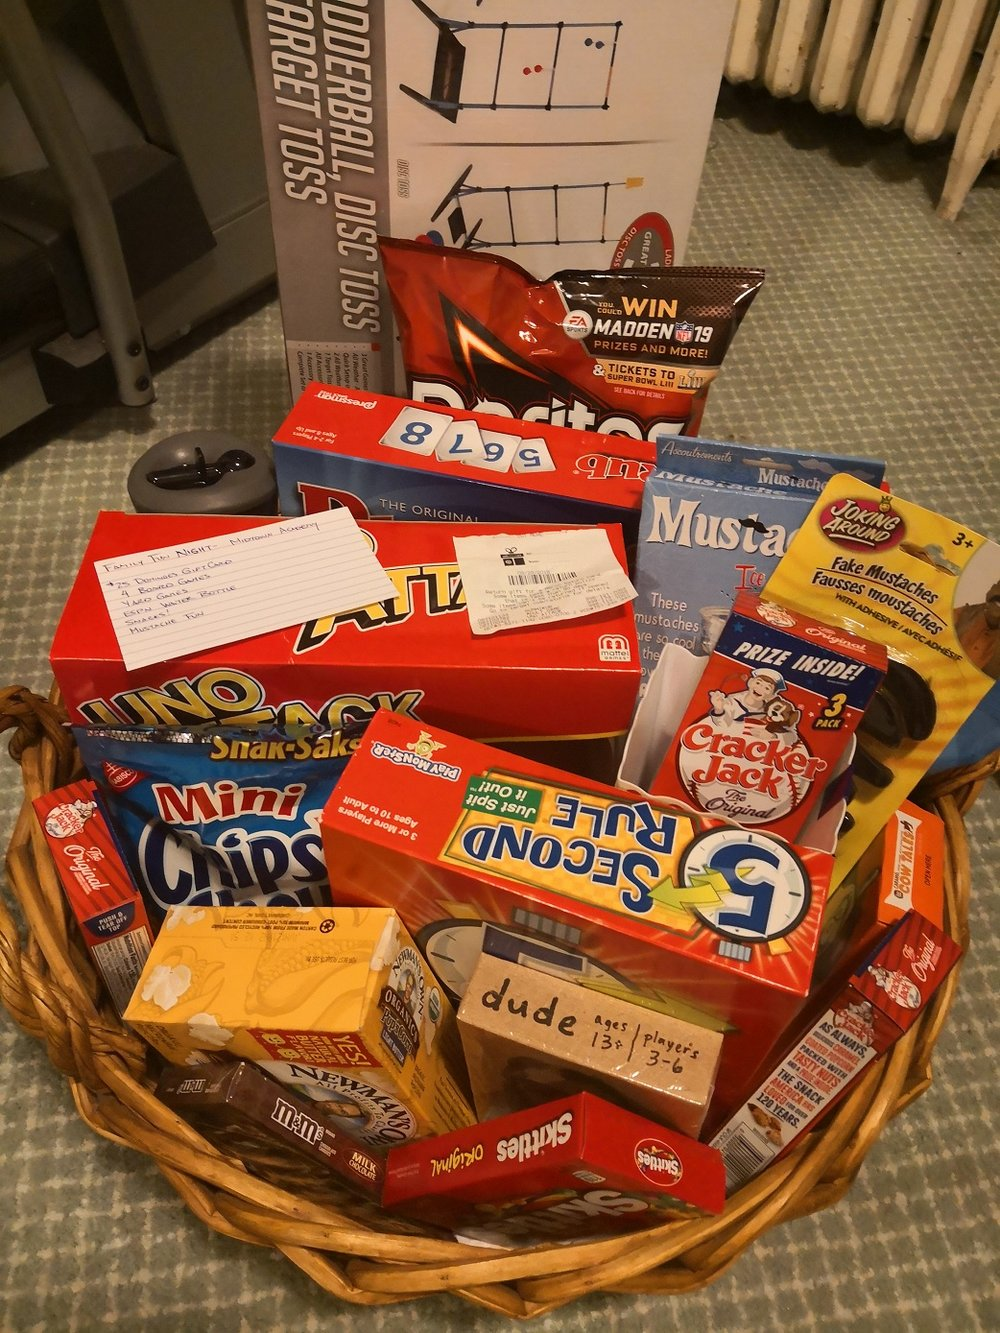 Sample Prize Basket - look at all the calories!